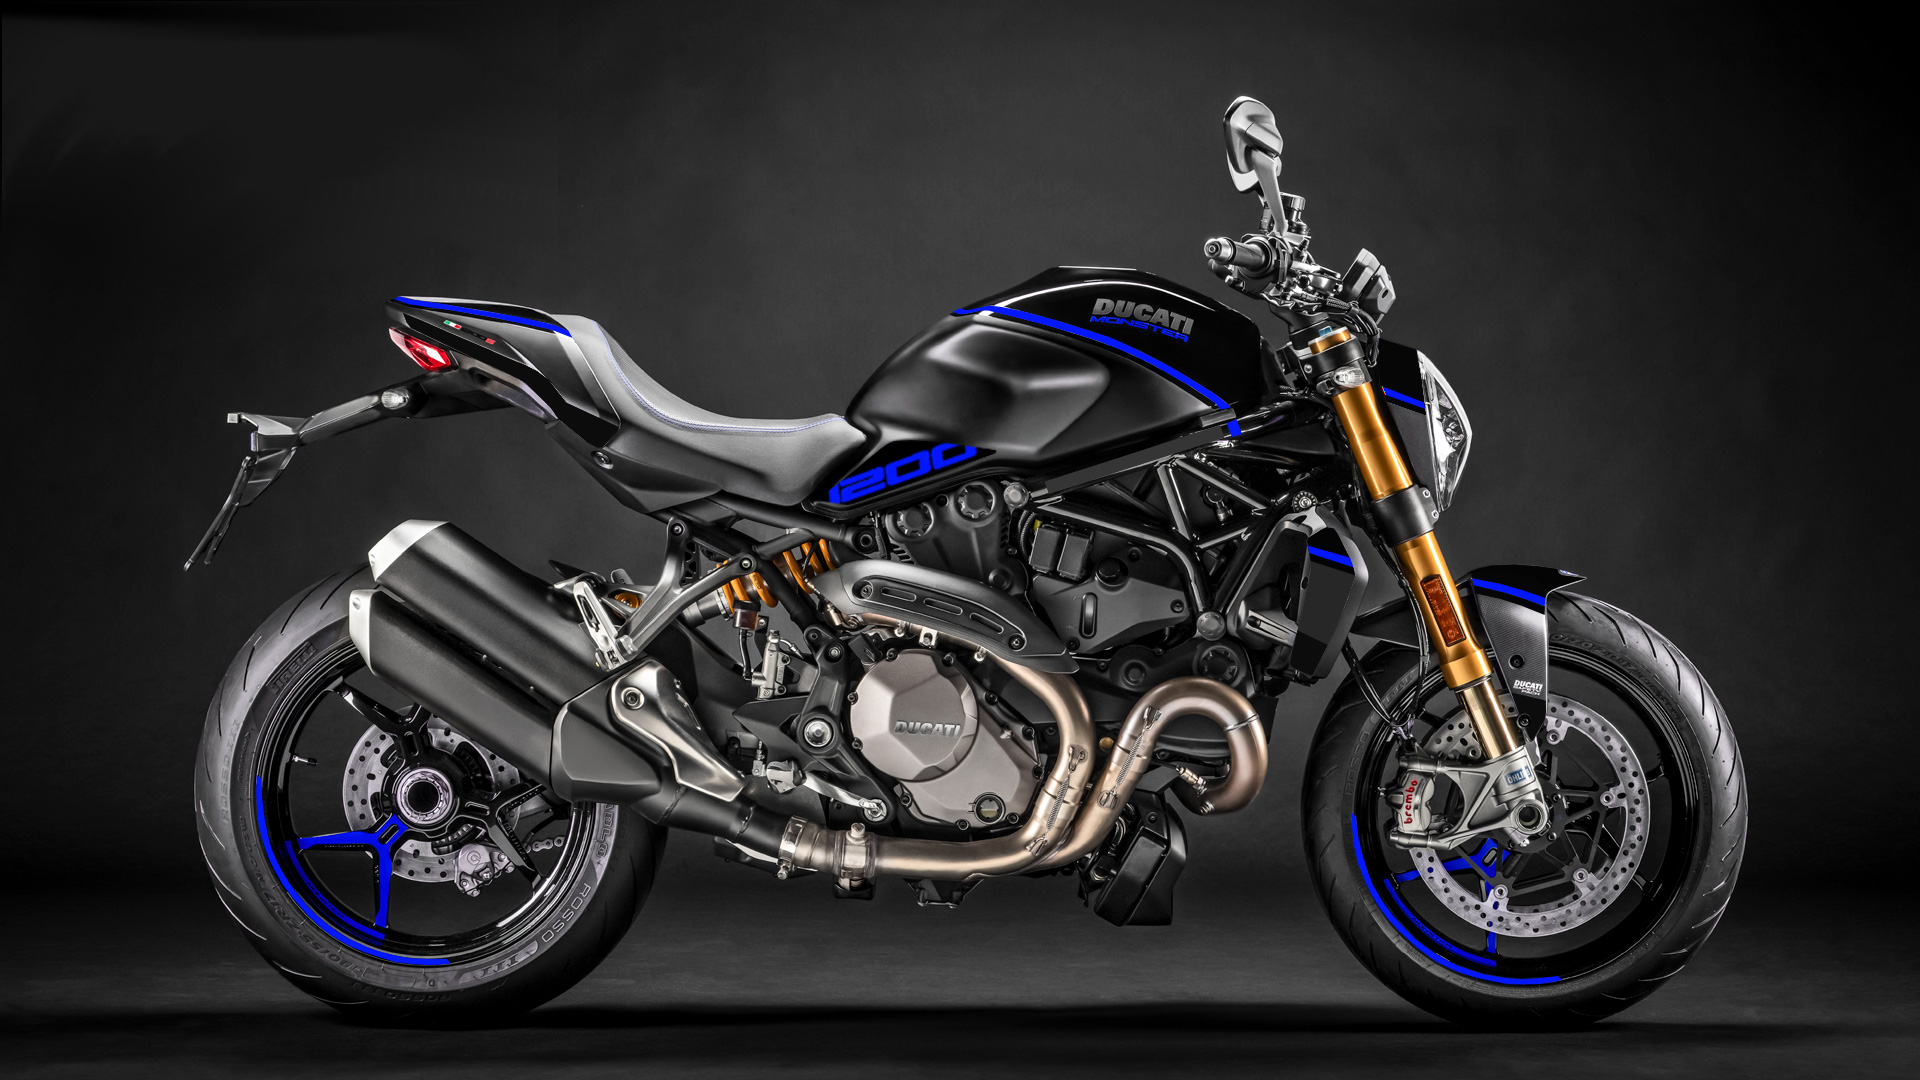 Foliendesign DUCATI  Monster 1200 Bj. 2020 Racing Blue